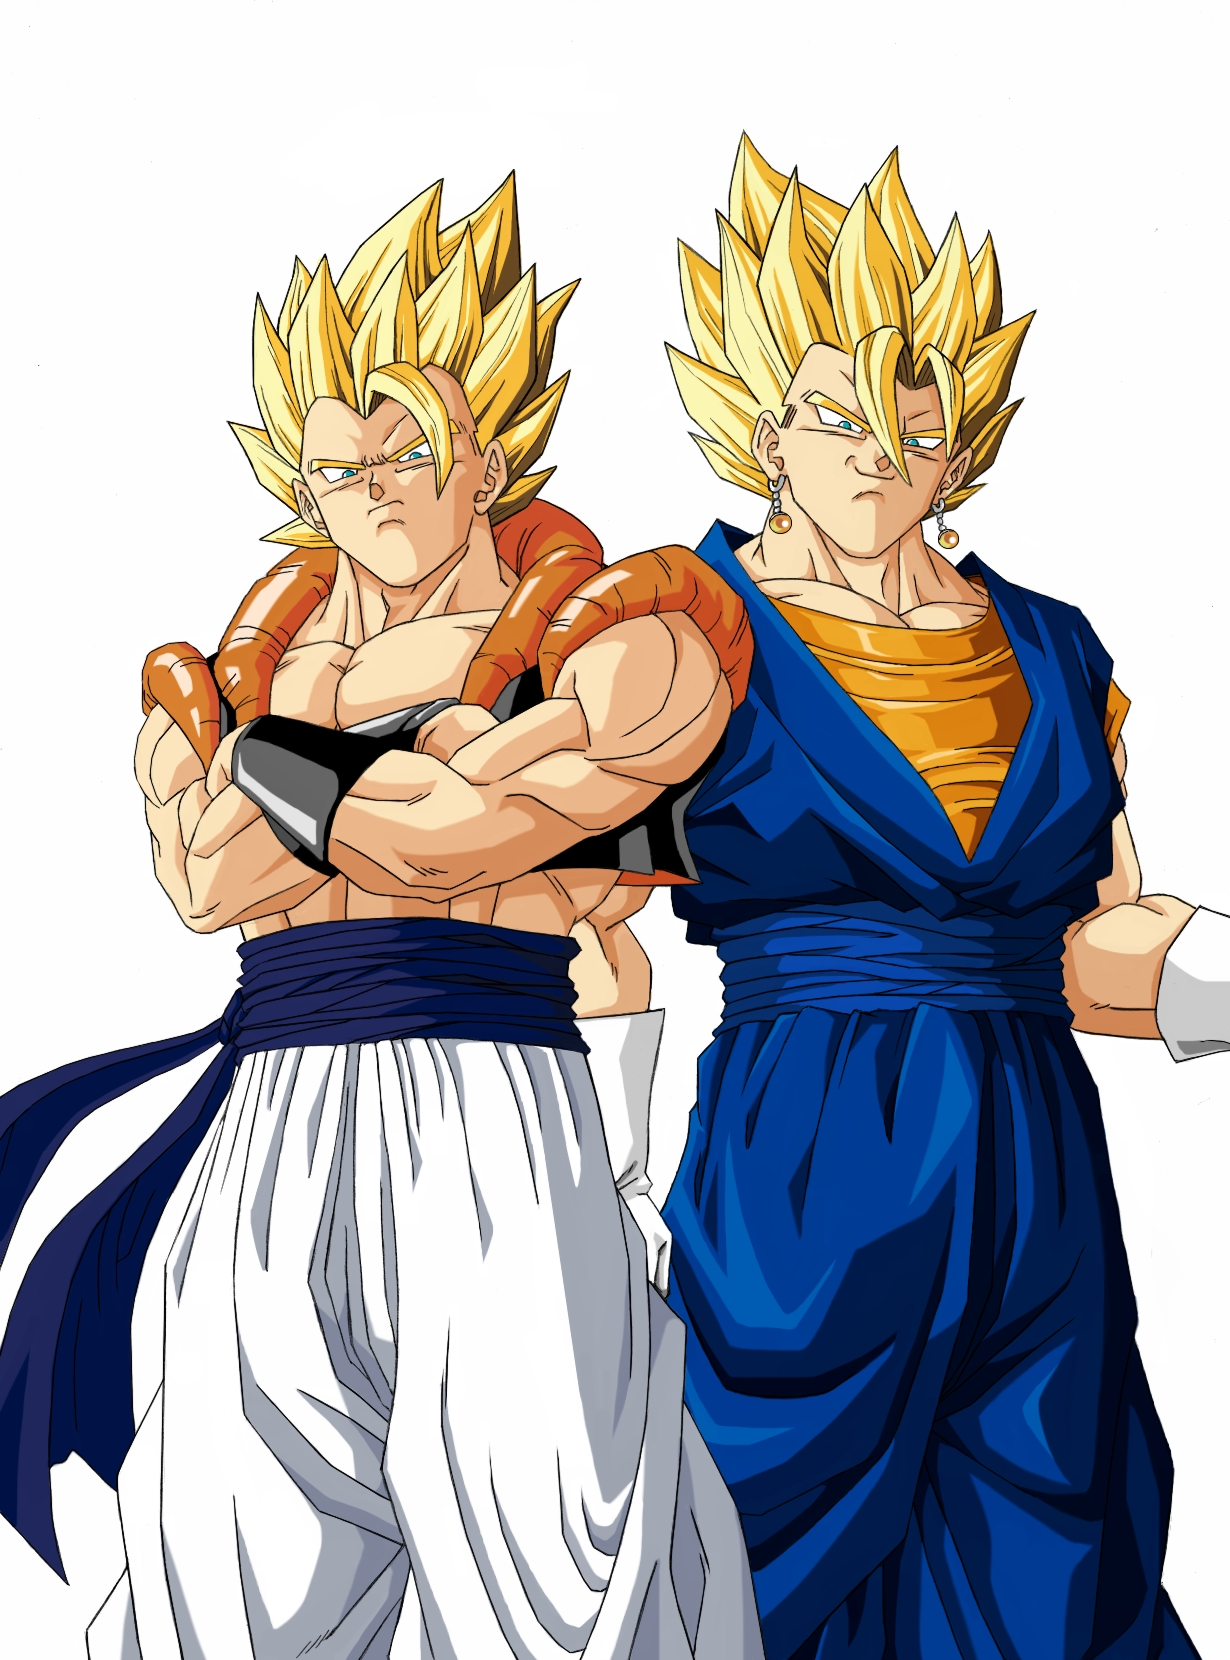 Gogeta and Vegito - Dragon Ball Z Photo (70249) - Fanpop